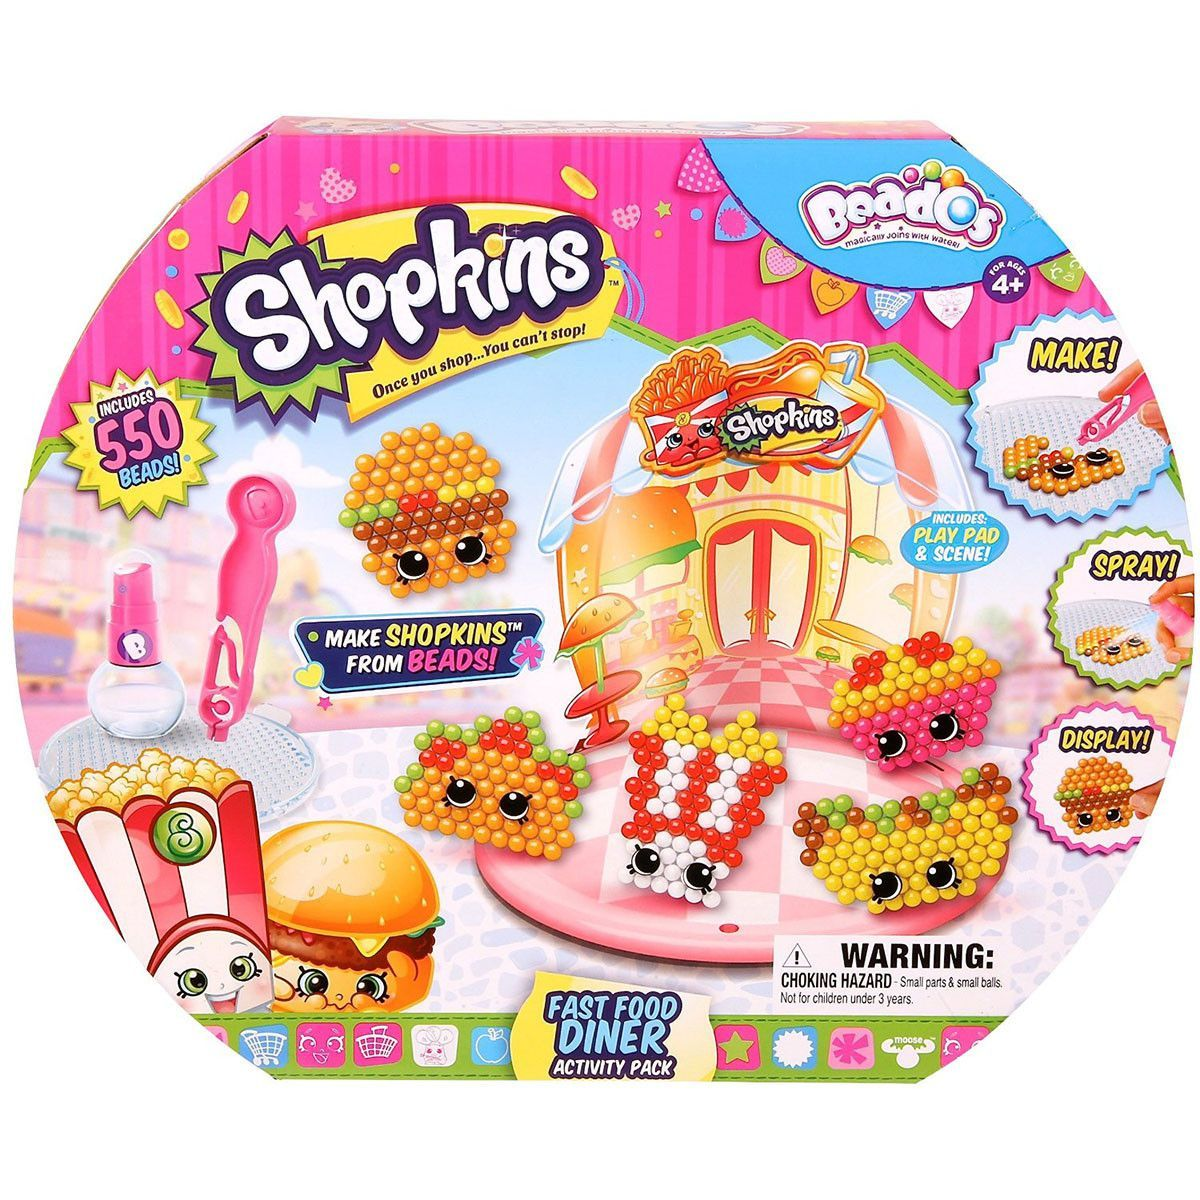 Shopkins Beados Fast Food Diner Activity Pack | I love beados ...